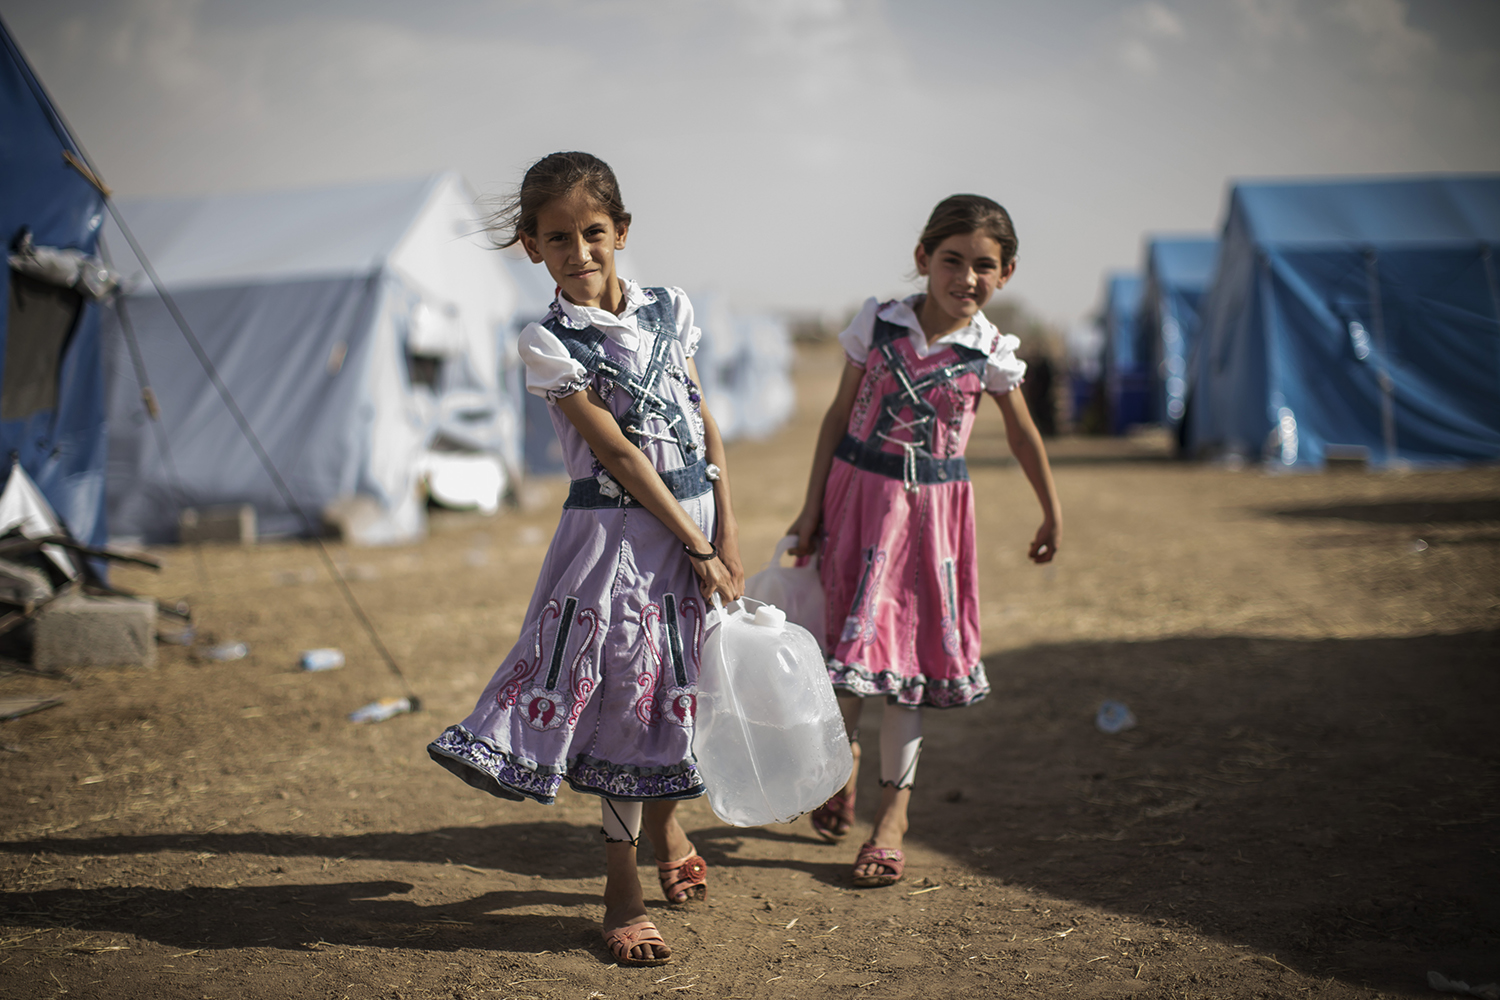 June 13, 2014. Iraqi children carry water to their tent at a temporary displacement camp set up next to a Kurdish checkpoint in Kalak.